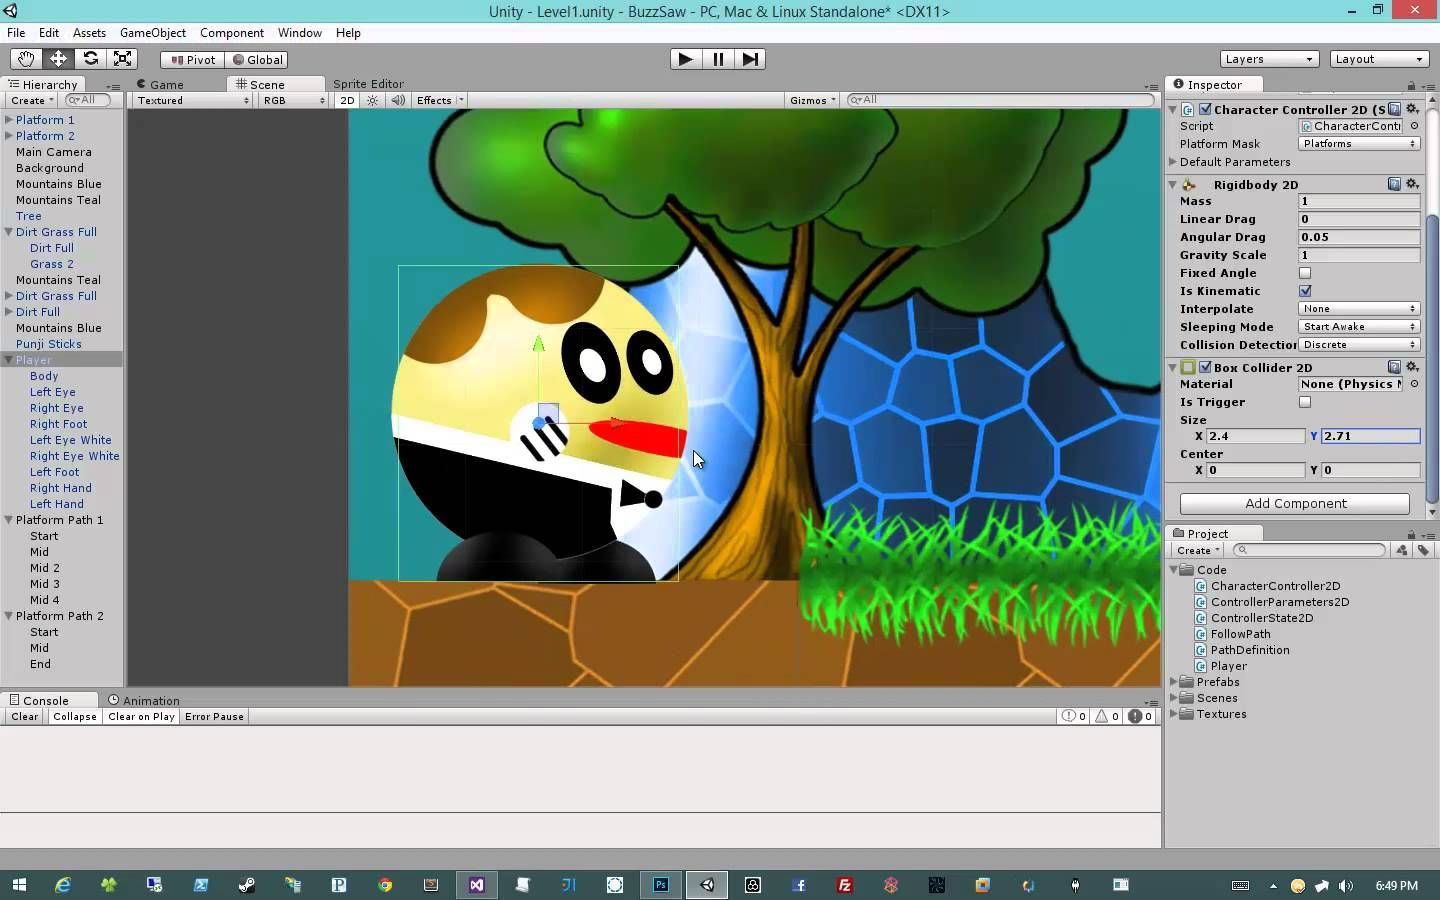 Creating 2D Games in Unity 4 5 #6 - Character Controller #2